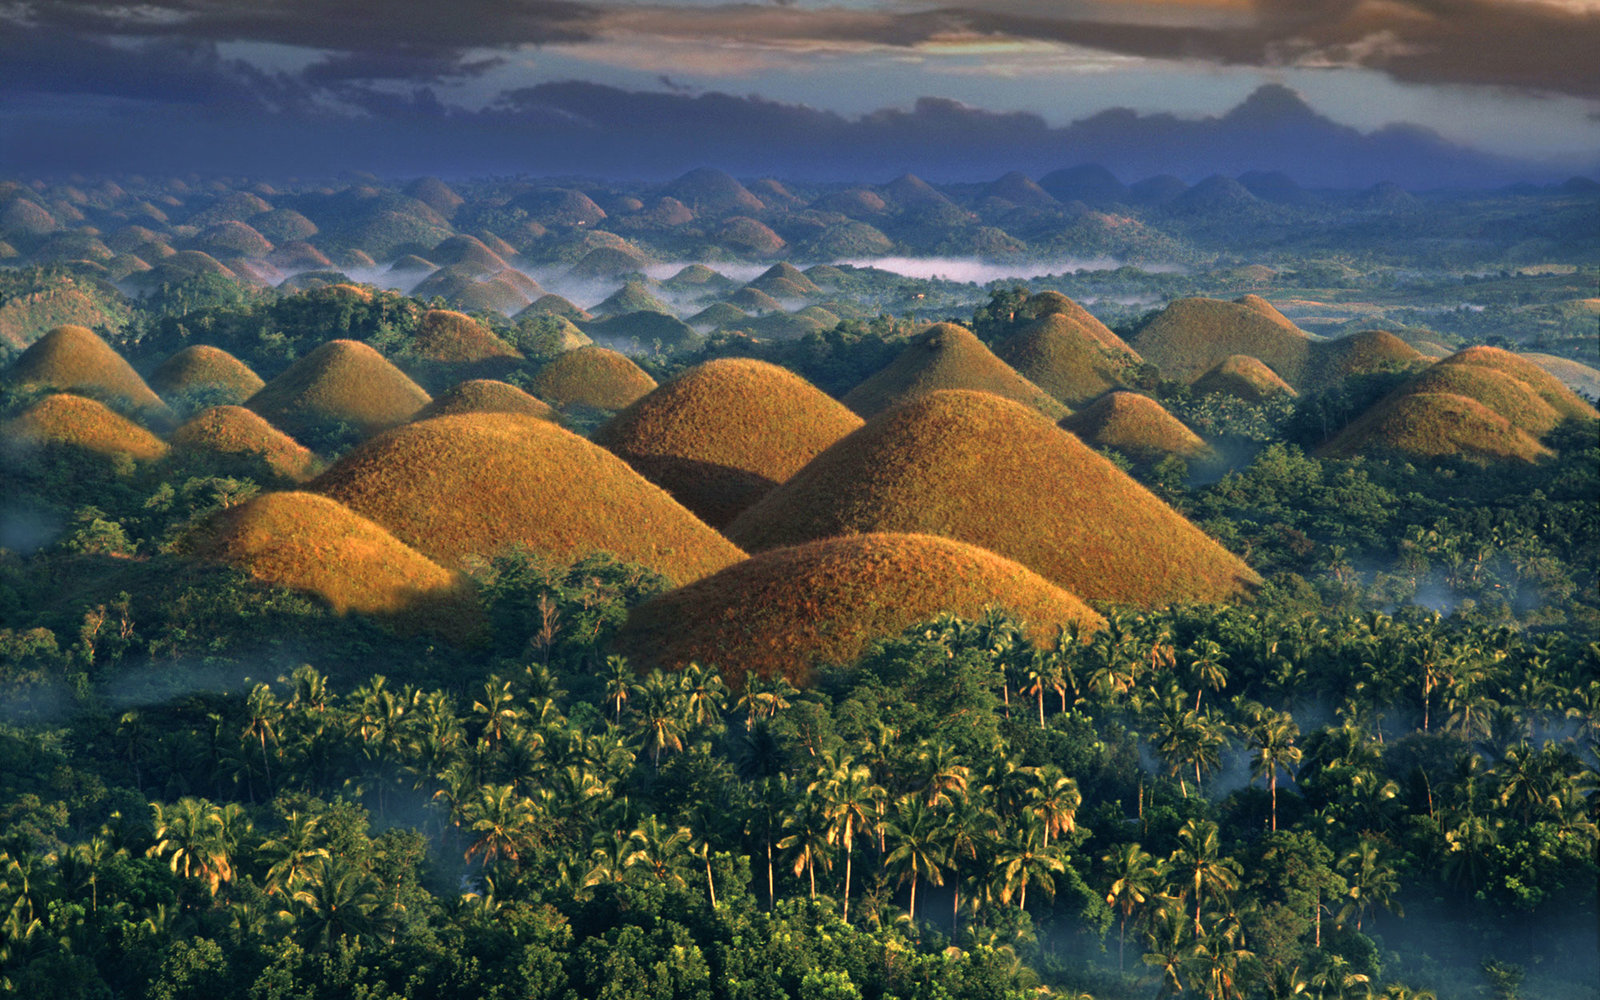 Philippines, Chocolate Hills at sunrise